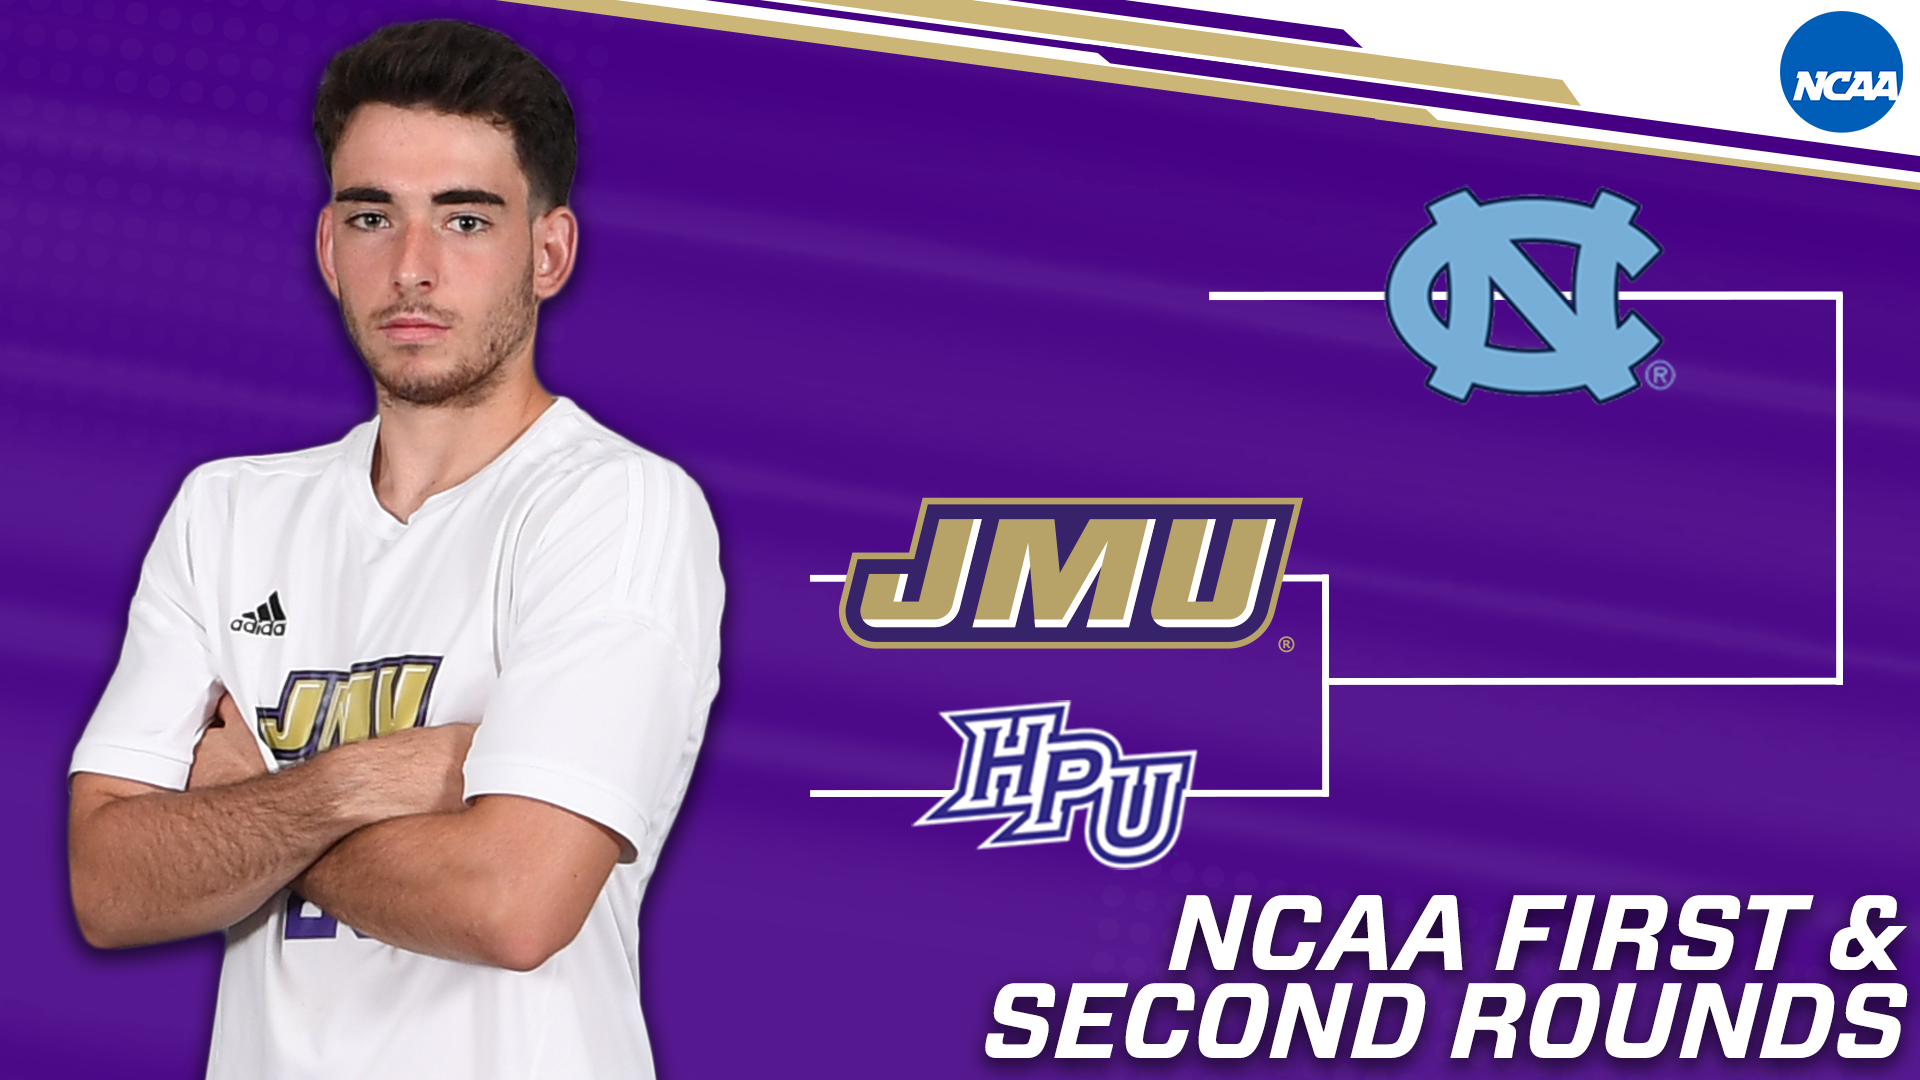 Men's Soccer: Dukes to Face High Point in First Round of NCAA Tournament